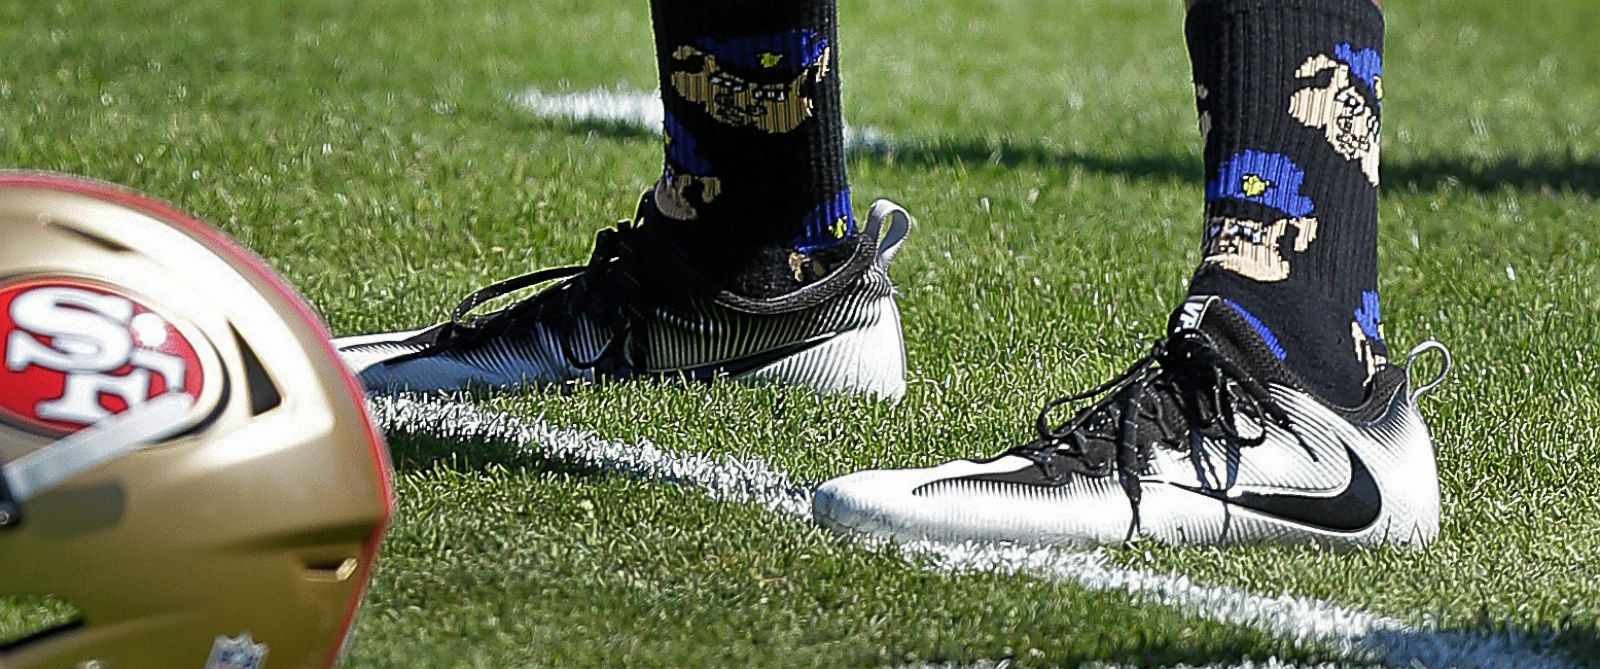 colin kaepernick socks setting off police 2016 images